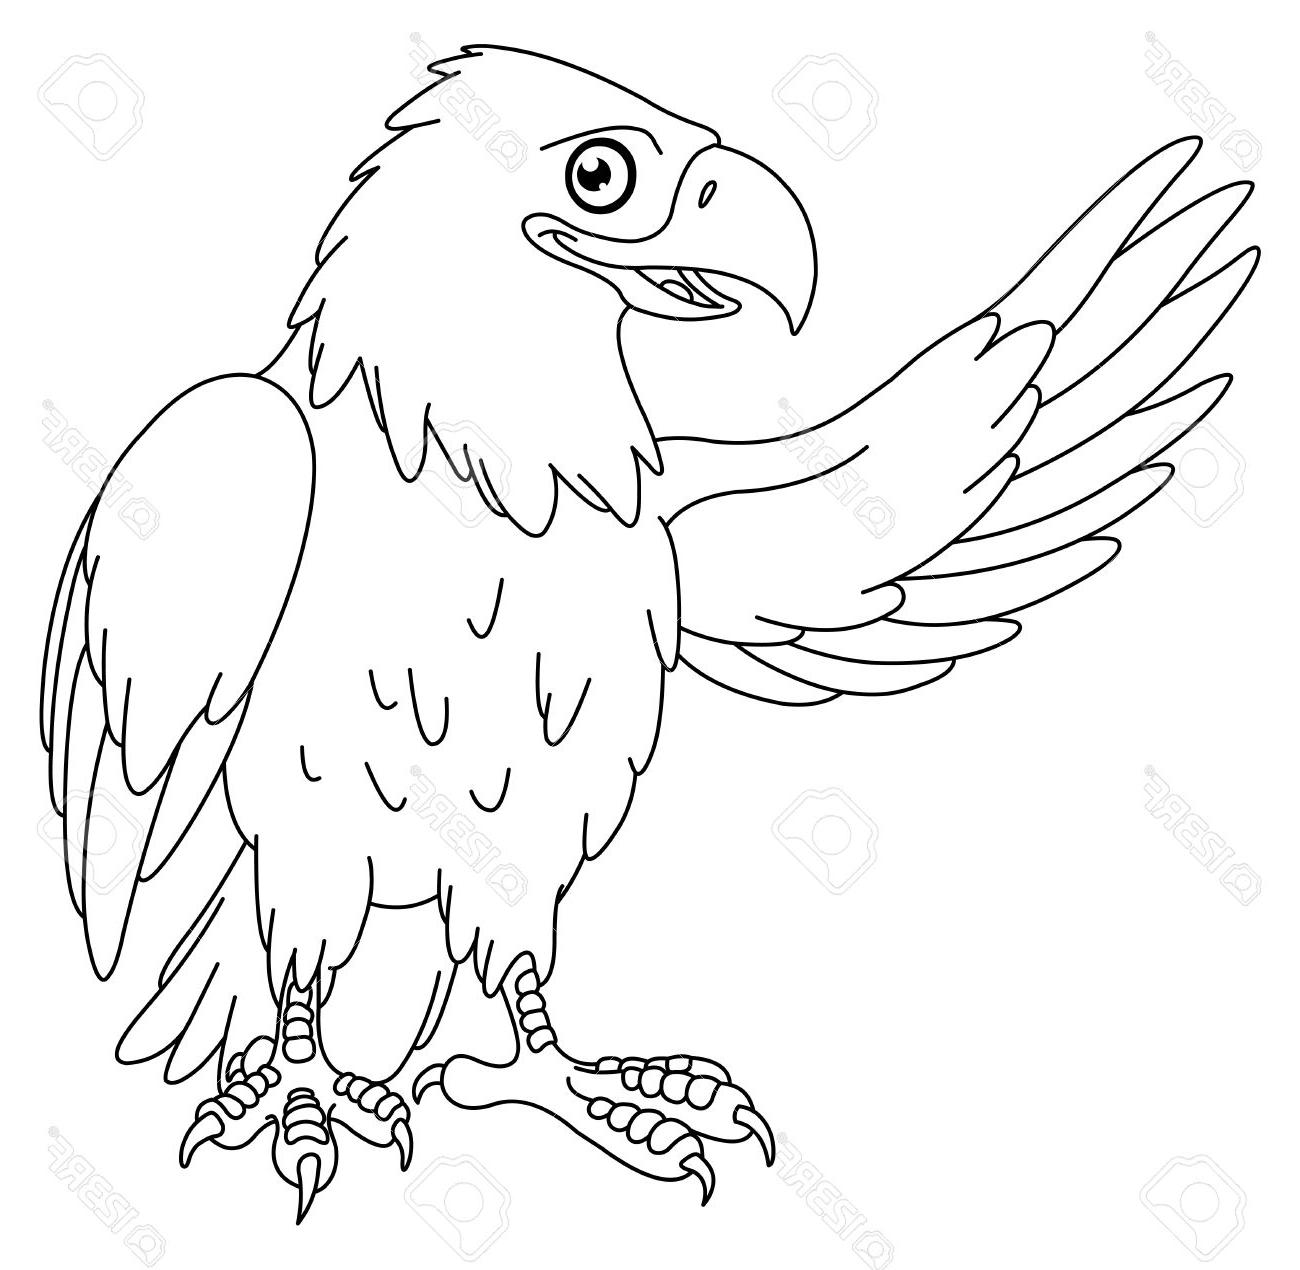 cartoon eagle coloring pages free printable bald eagle coloring pages for kids eagle cartoon coloring pages